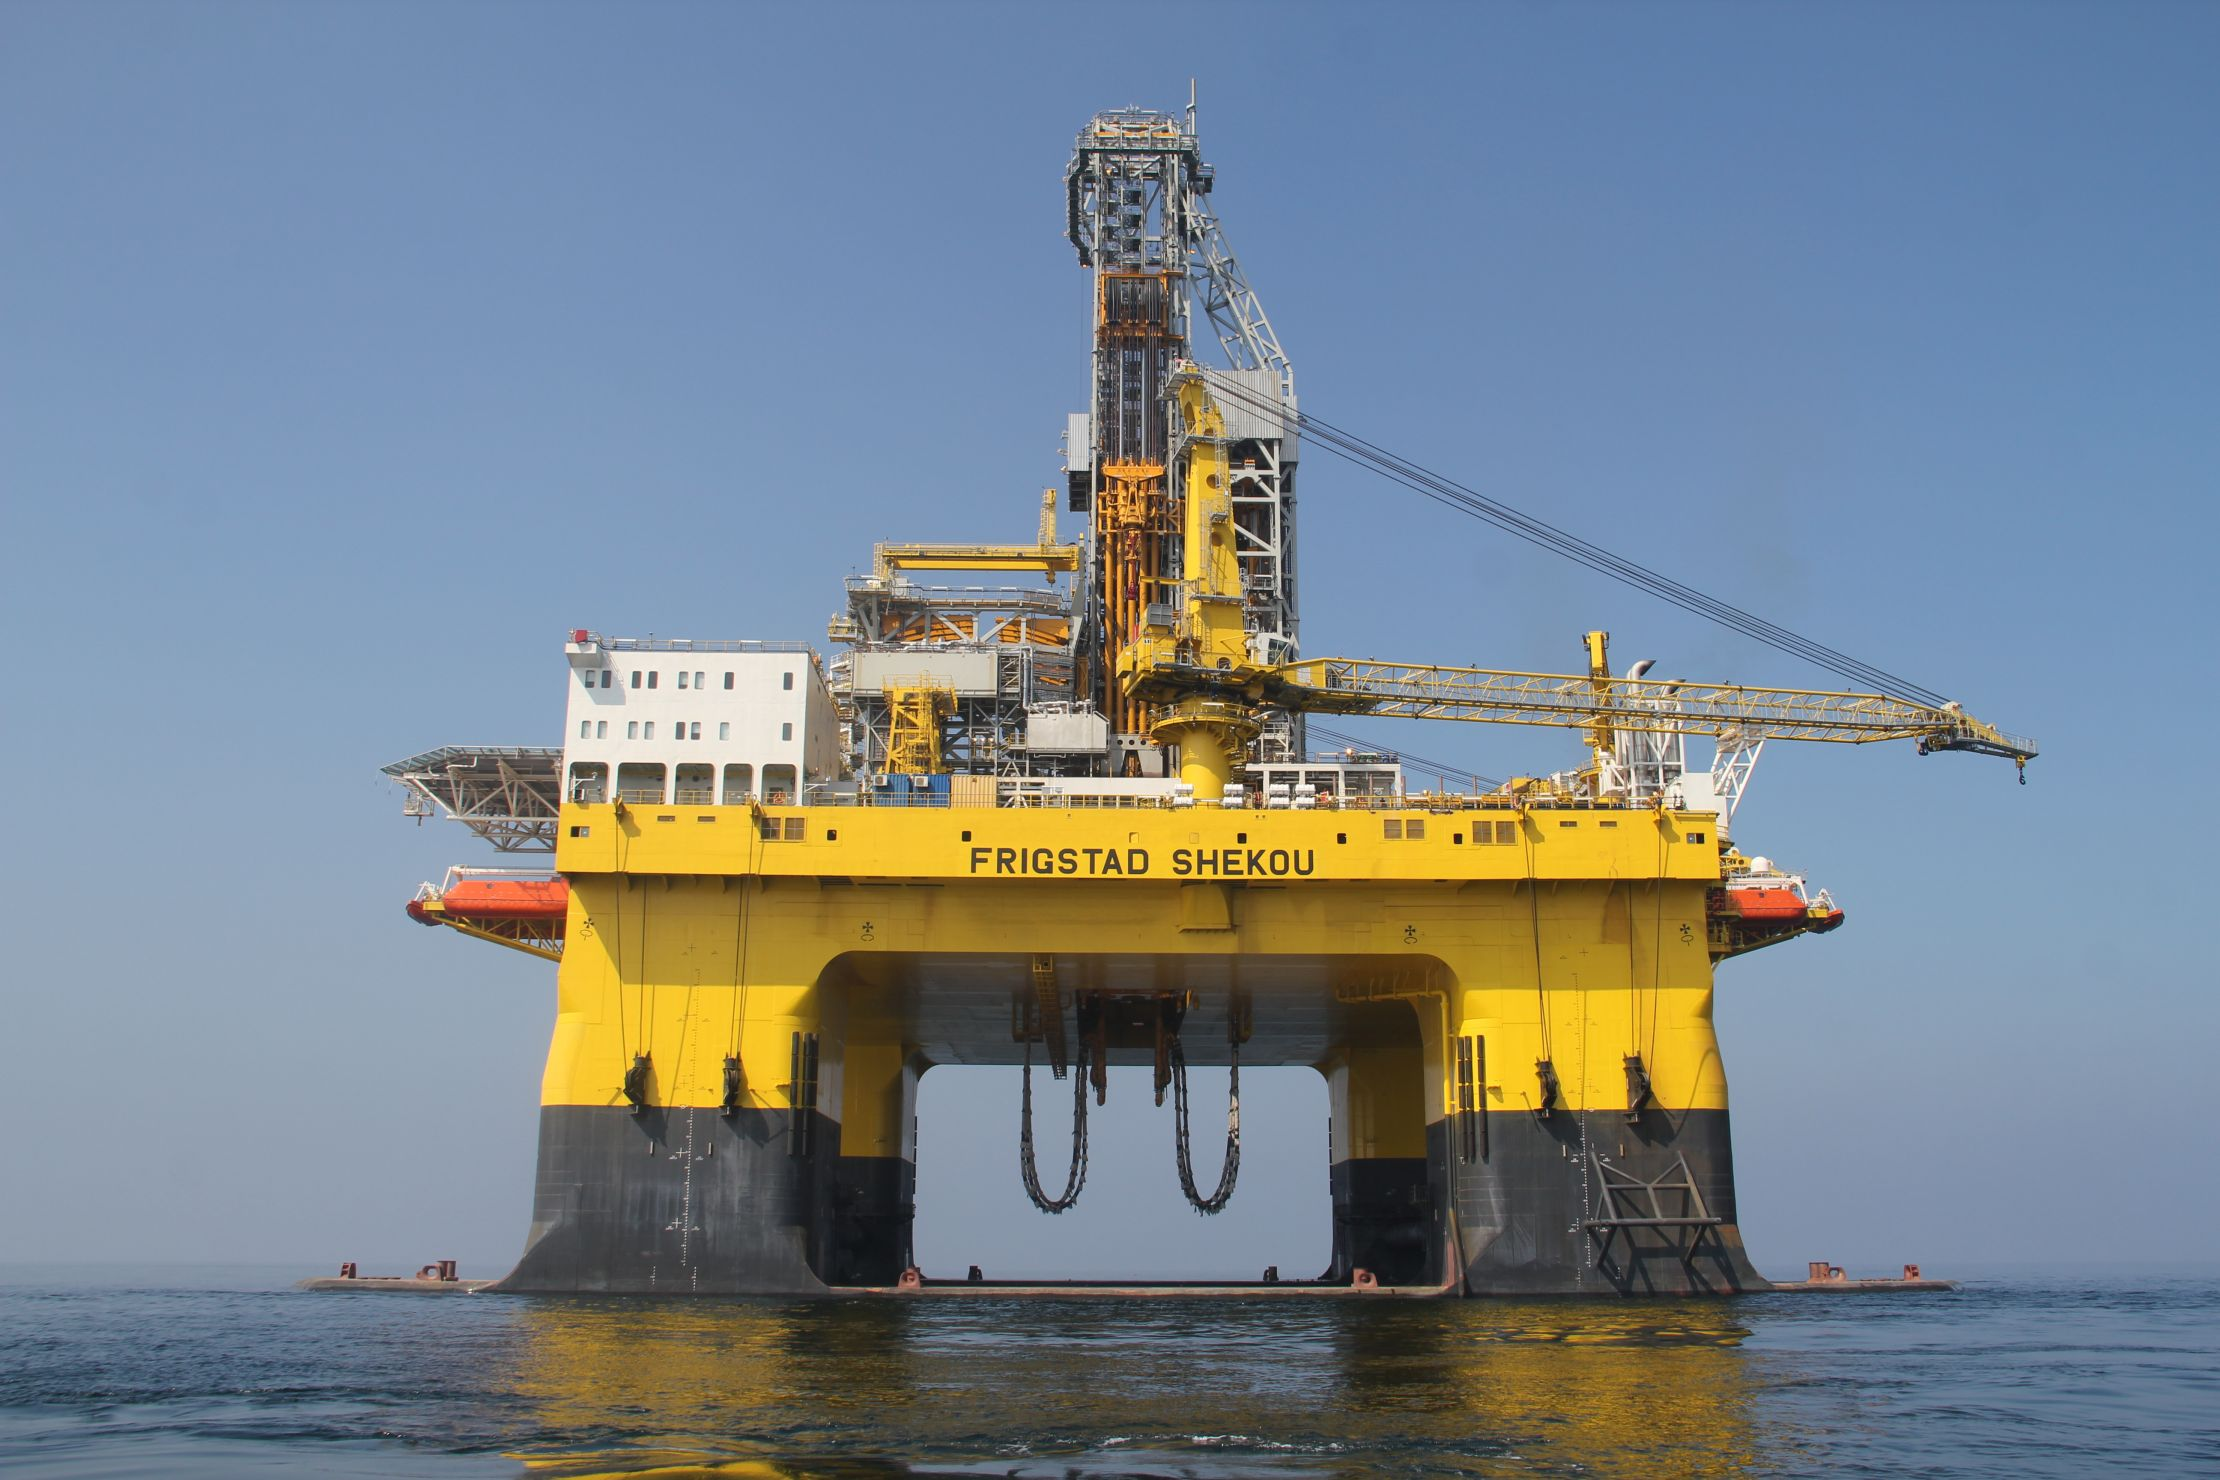 off shore drilling outline Overview east coast communities strongly oppose offshore oil and gas drilling and collapse outline expand outline please visit: usaoceanaorg/pacific-drilling.